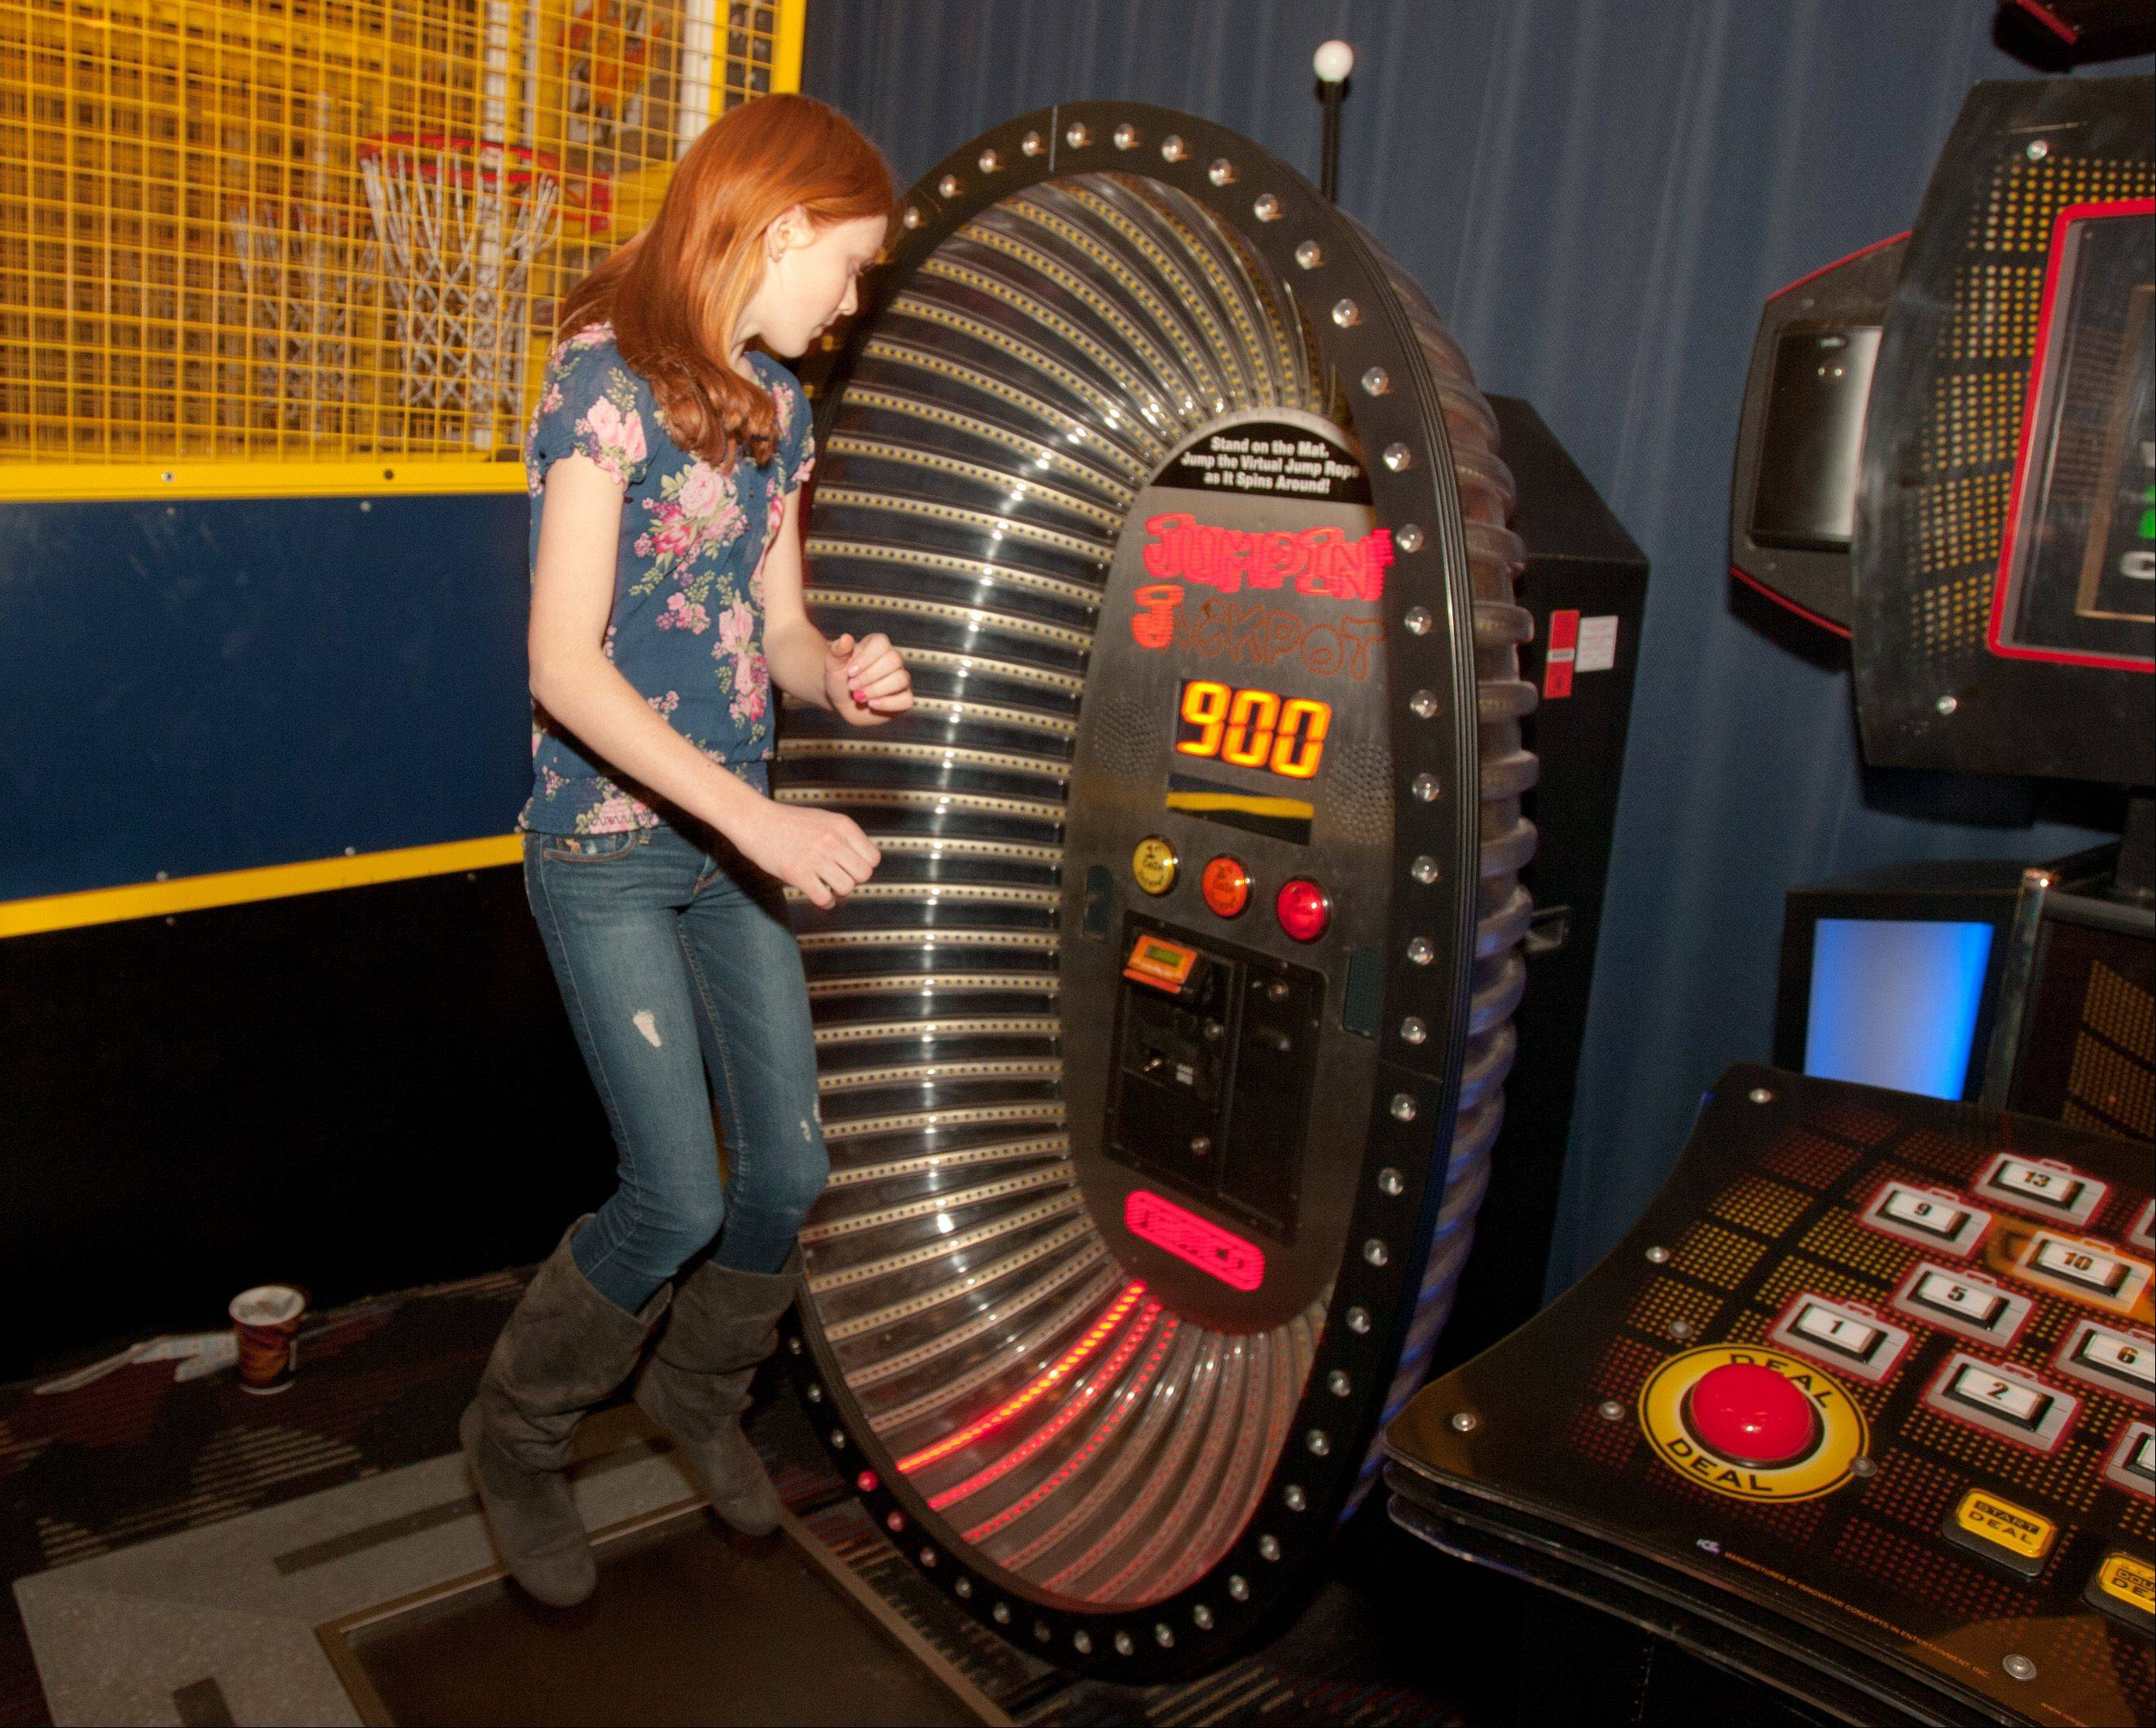 Lauren Gould, 13, of Elmhurst plays Jumpin' Jackpot, a jump-rope simulation video game at Dave and Buster's in Addison.